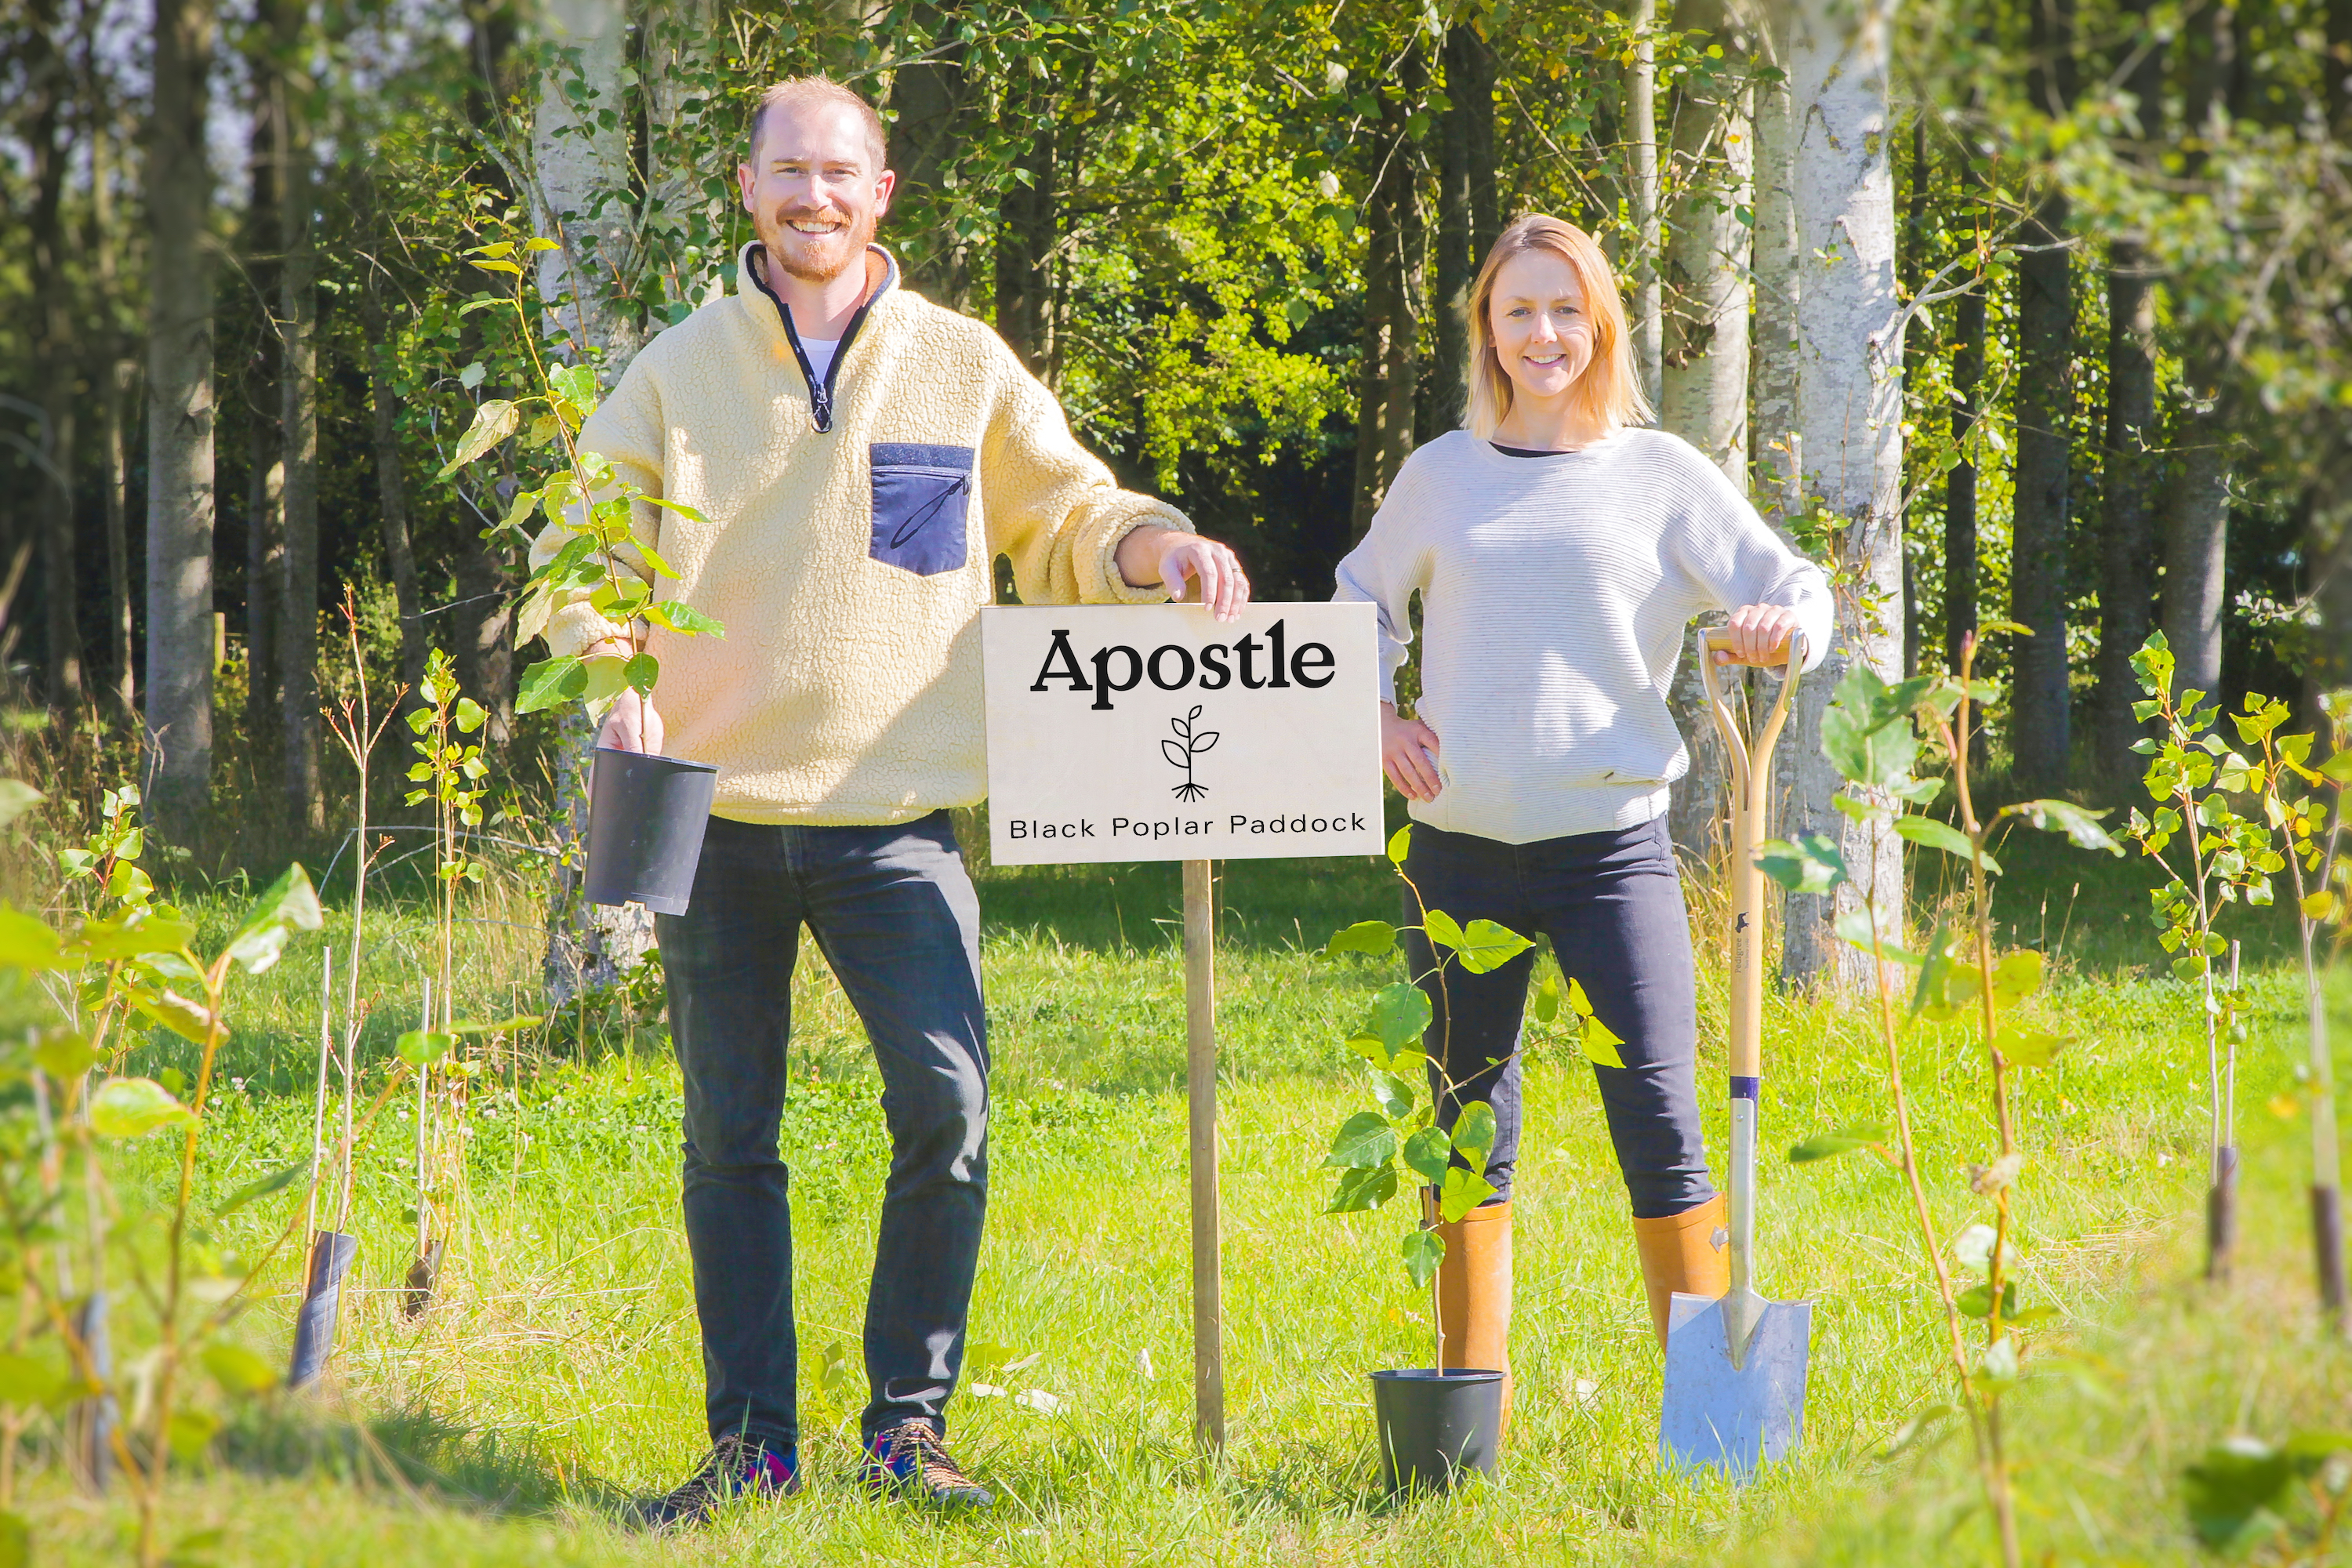 the apostle coffee team standing in a wood